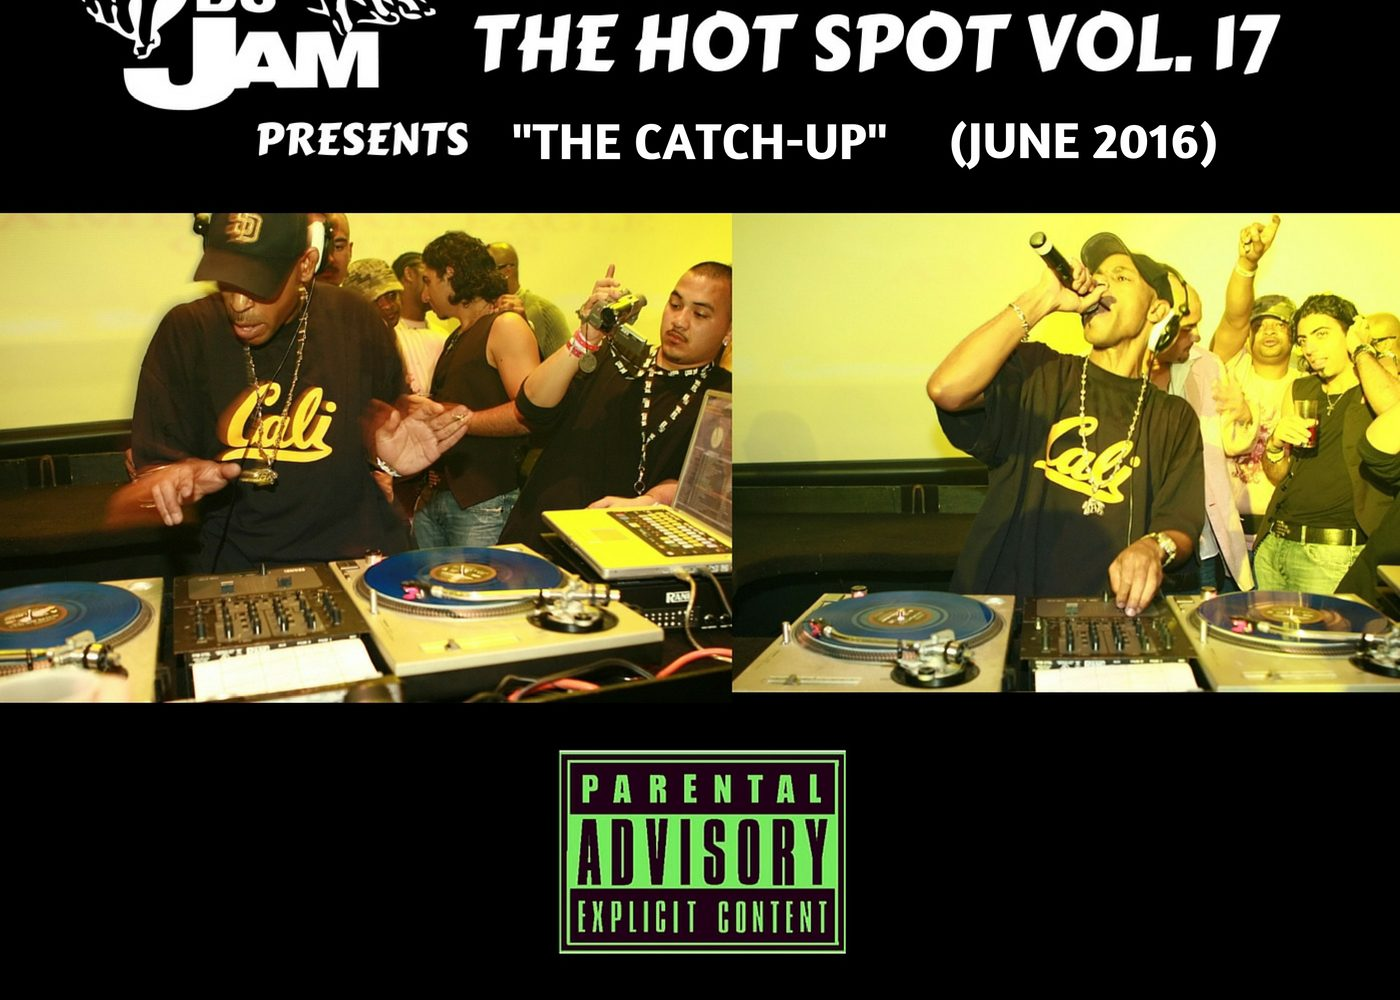 The Hot Spot Vol. 17 by DJ JAM